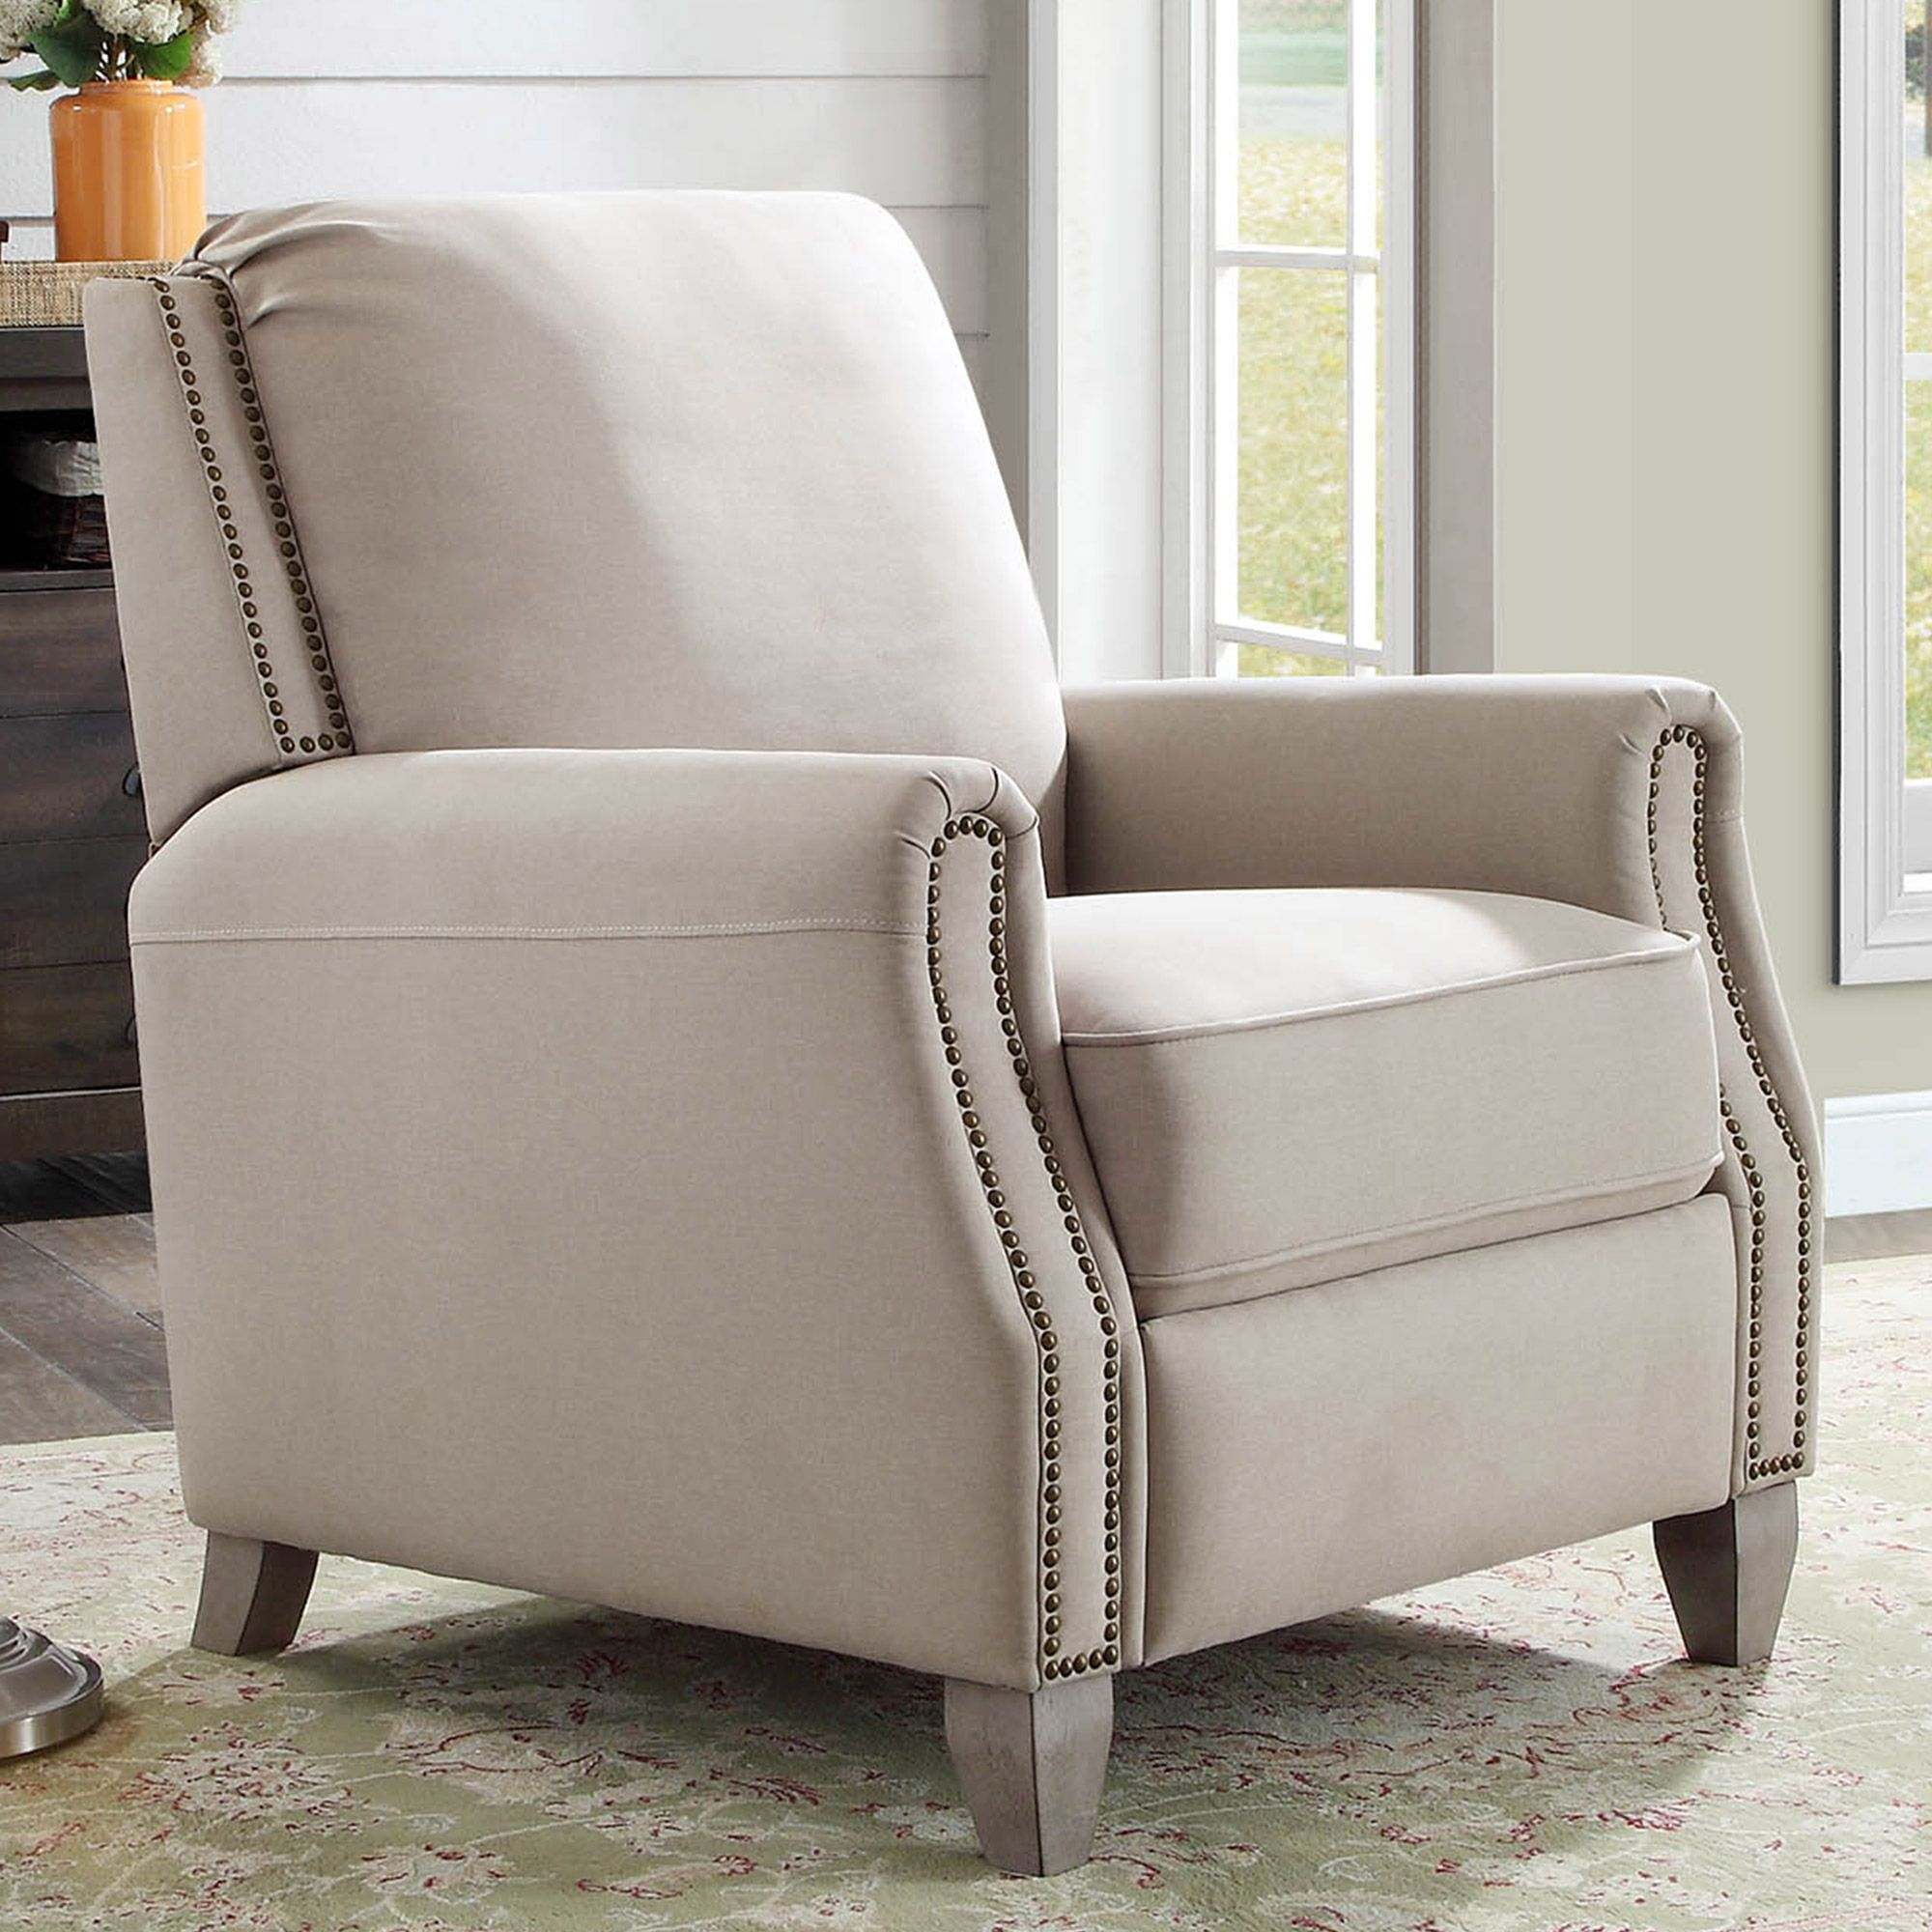 Home Recliner, Upholstery, Furniture